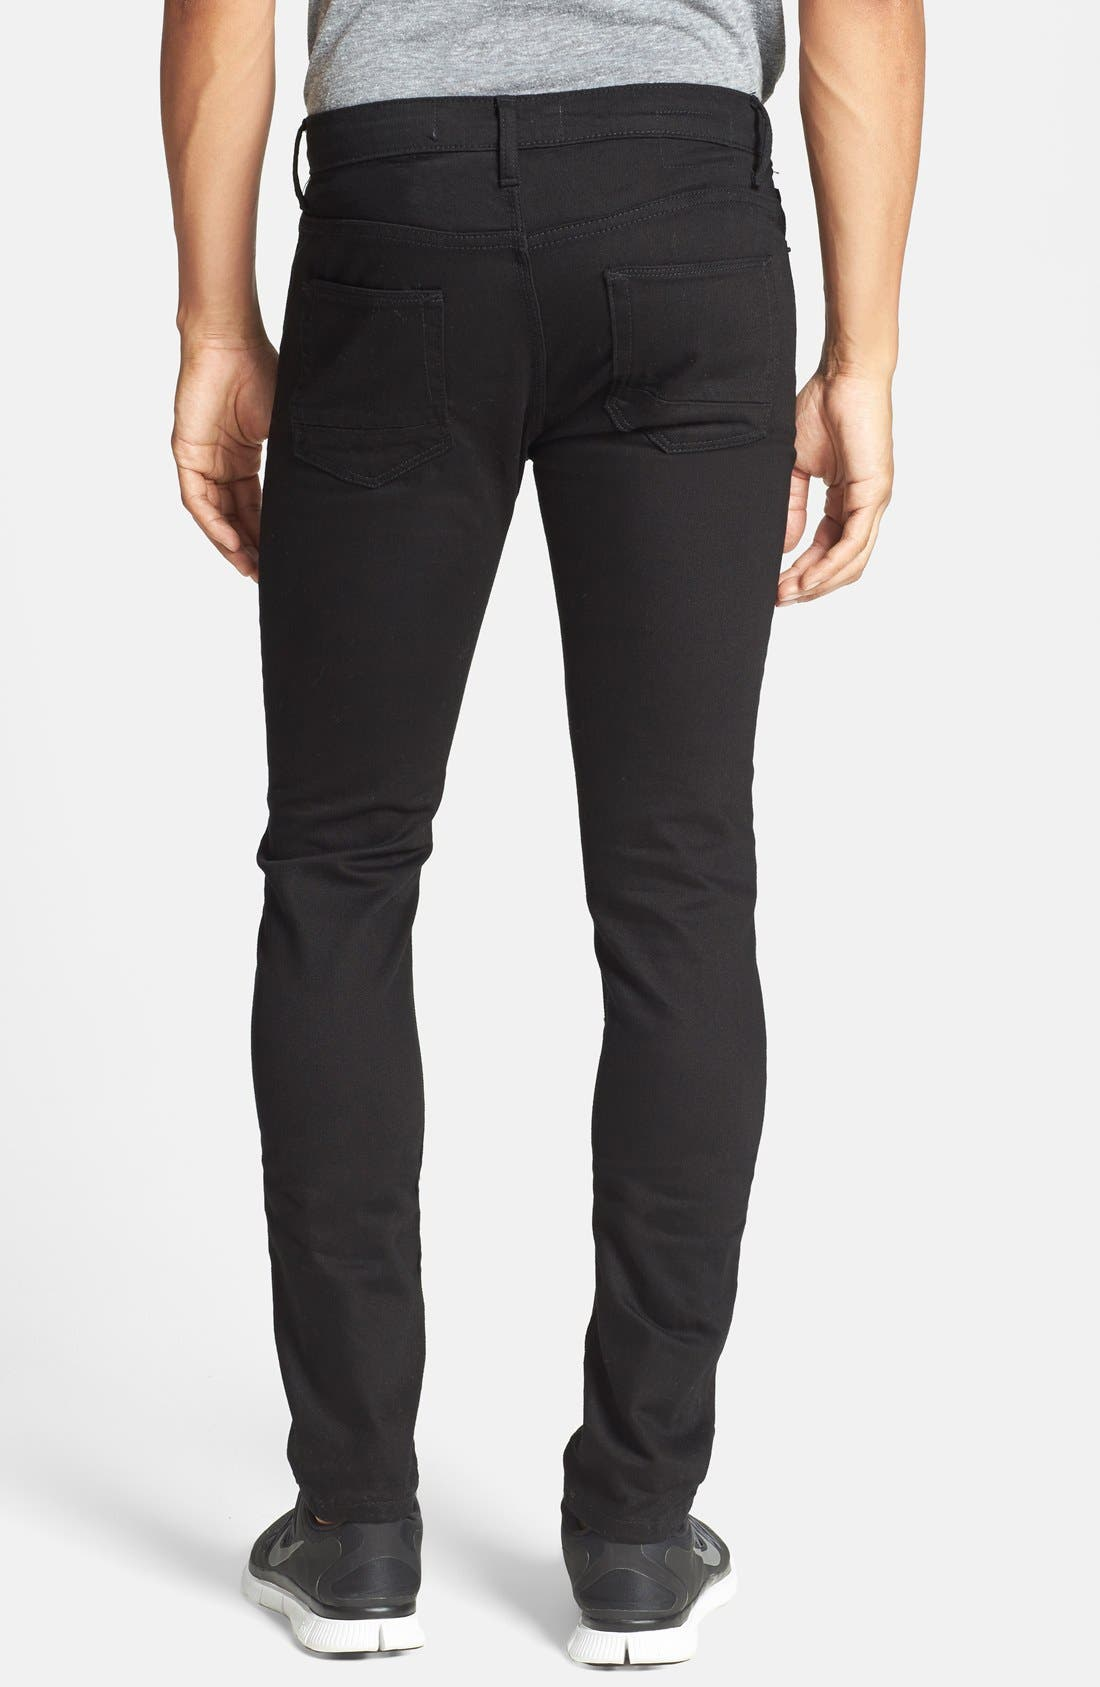 TOPMAN, Stretch Skinny Fit Jeans, Alternate thumbnail 2, color, 001